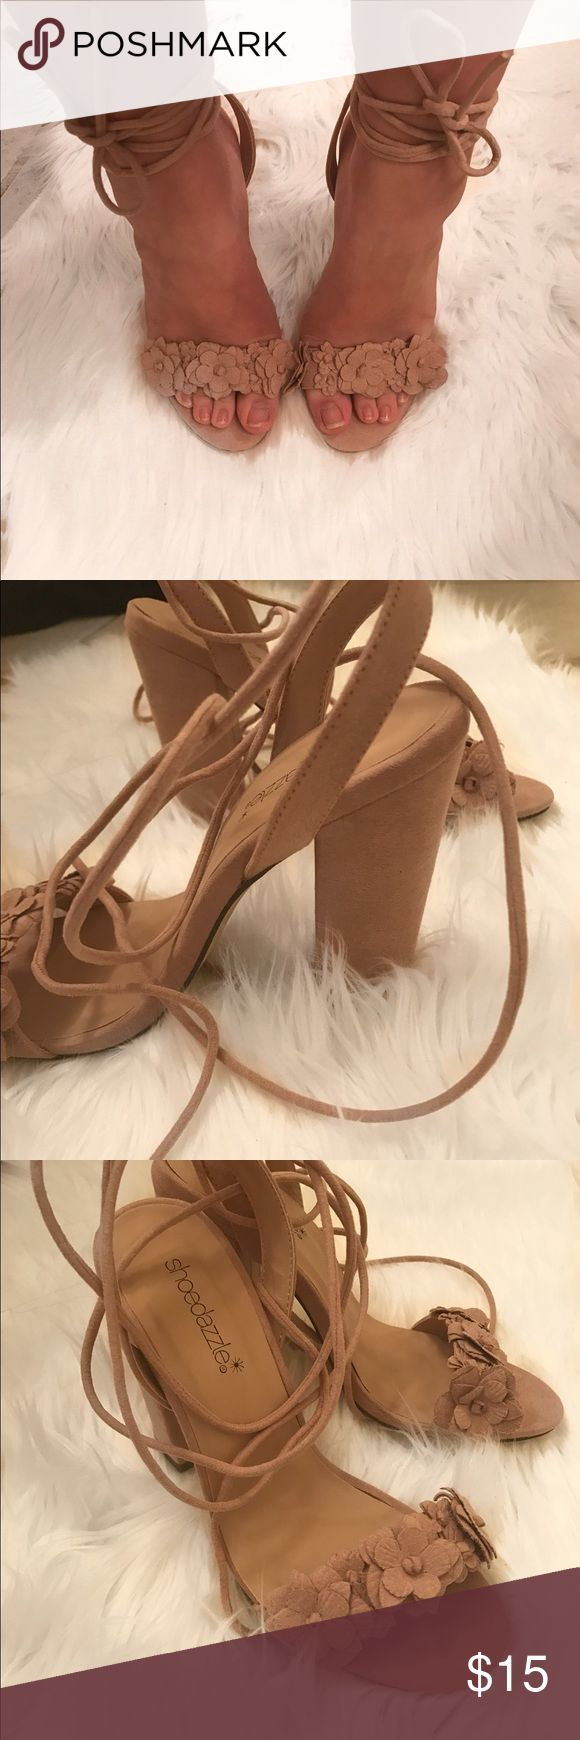 Never Worn! Shoe Dazzle Blush Heels These wrap heels are adorable!! They are suede and a blush color. Never worn! Only for try on picture. Shoe Dazzle Shoes Heels